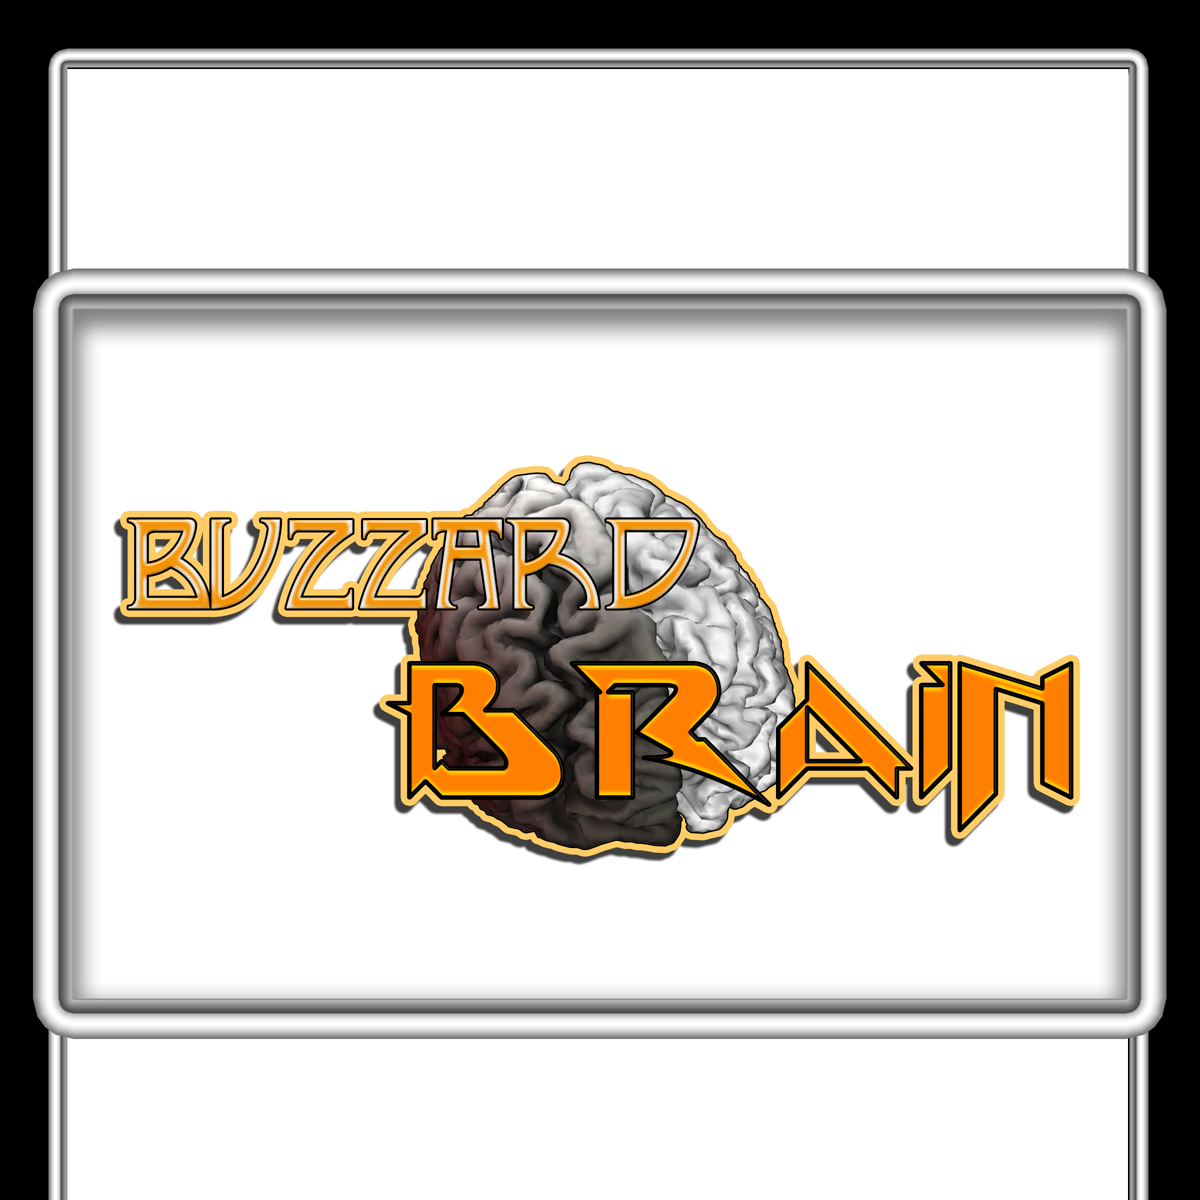 Logo Design by MITUCA ANDREI - Entry No. 22 in the Logo Design Contest Buzzard Brain Logo Design.